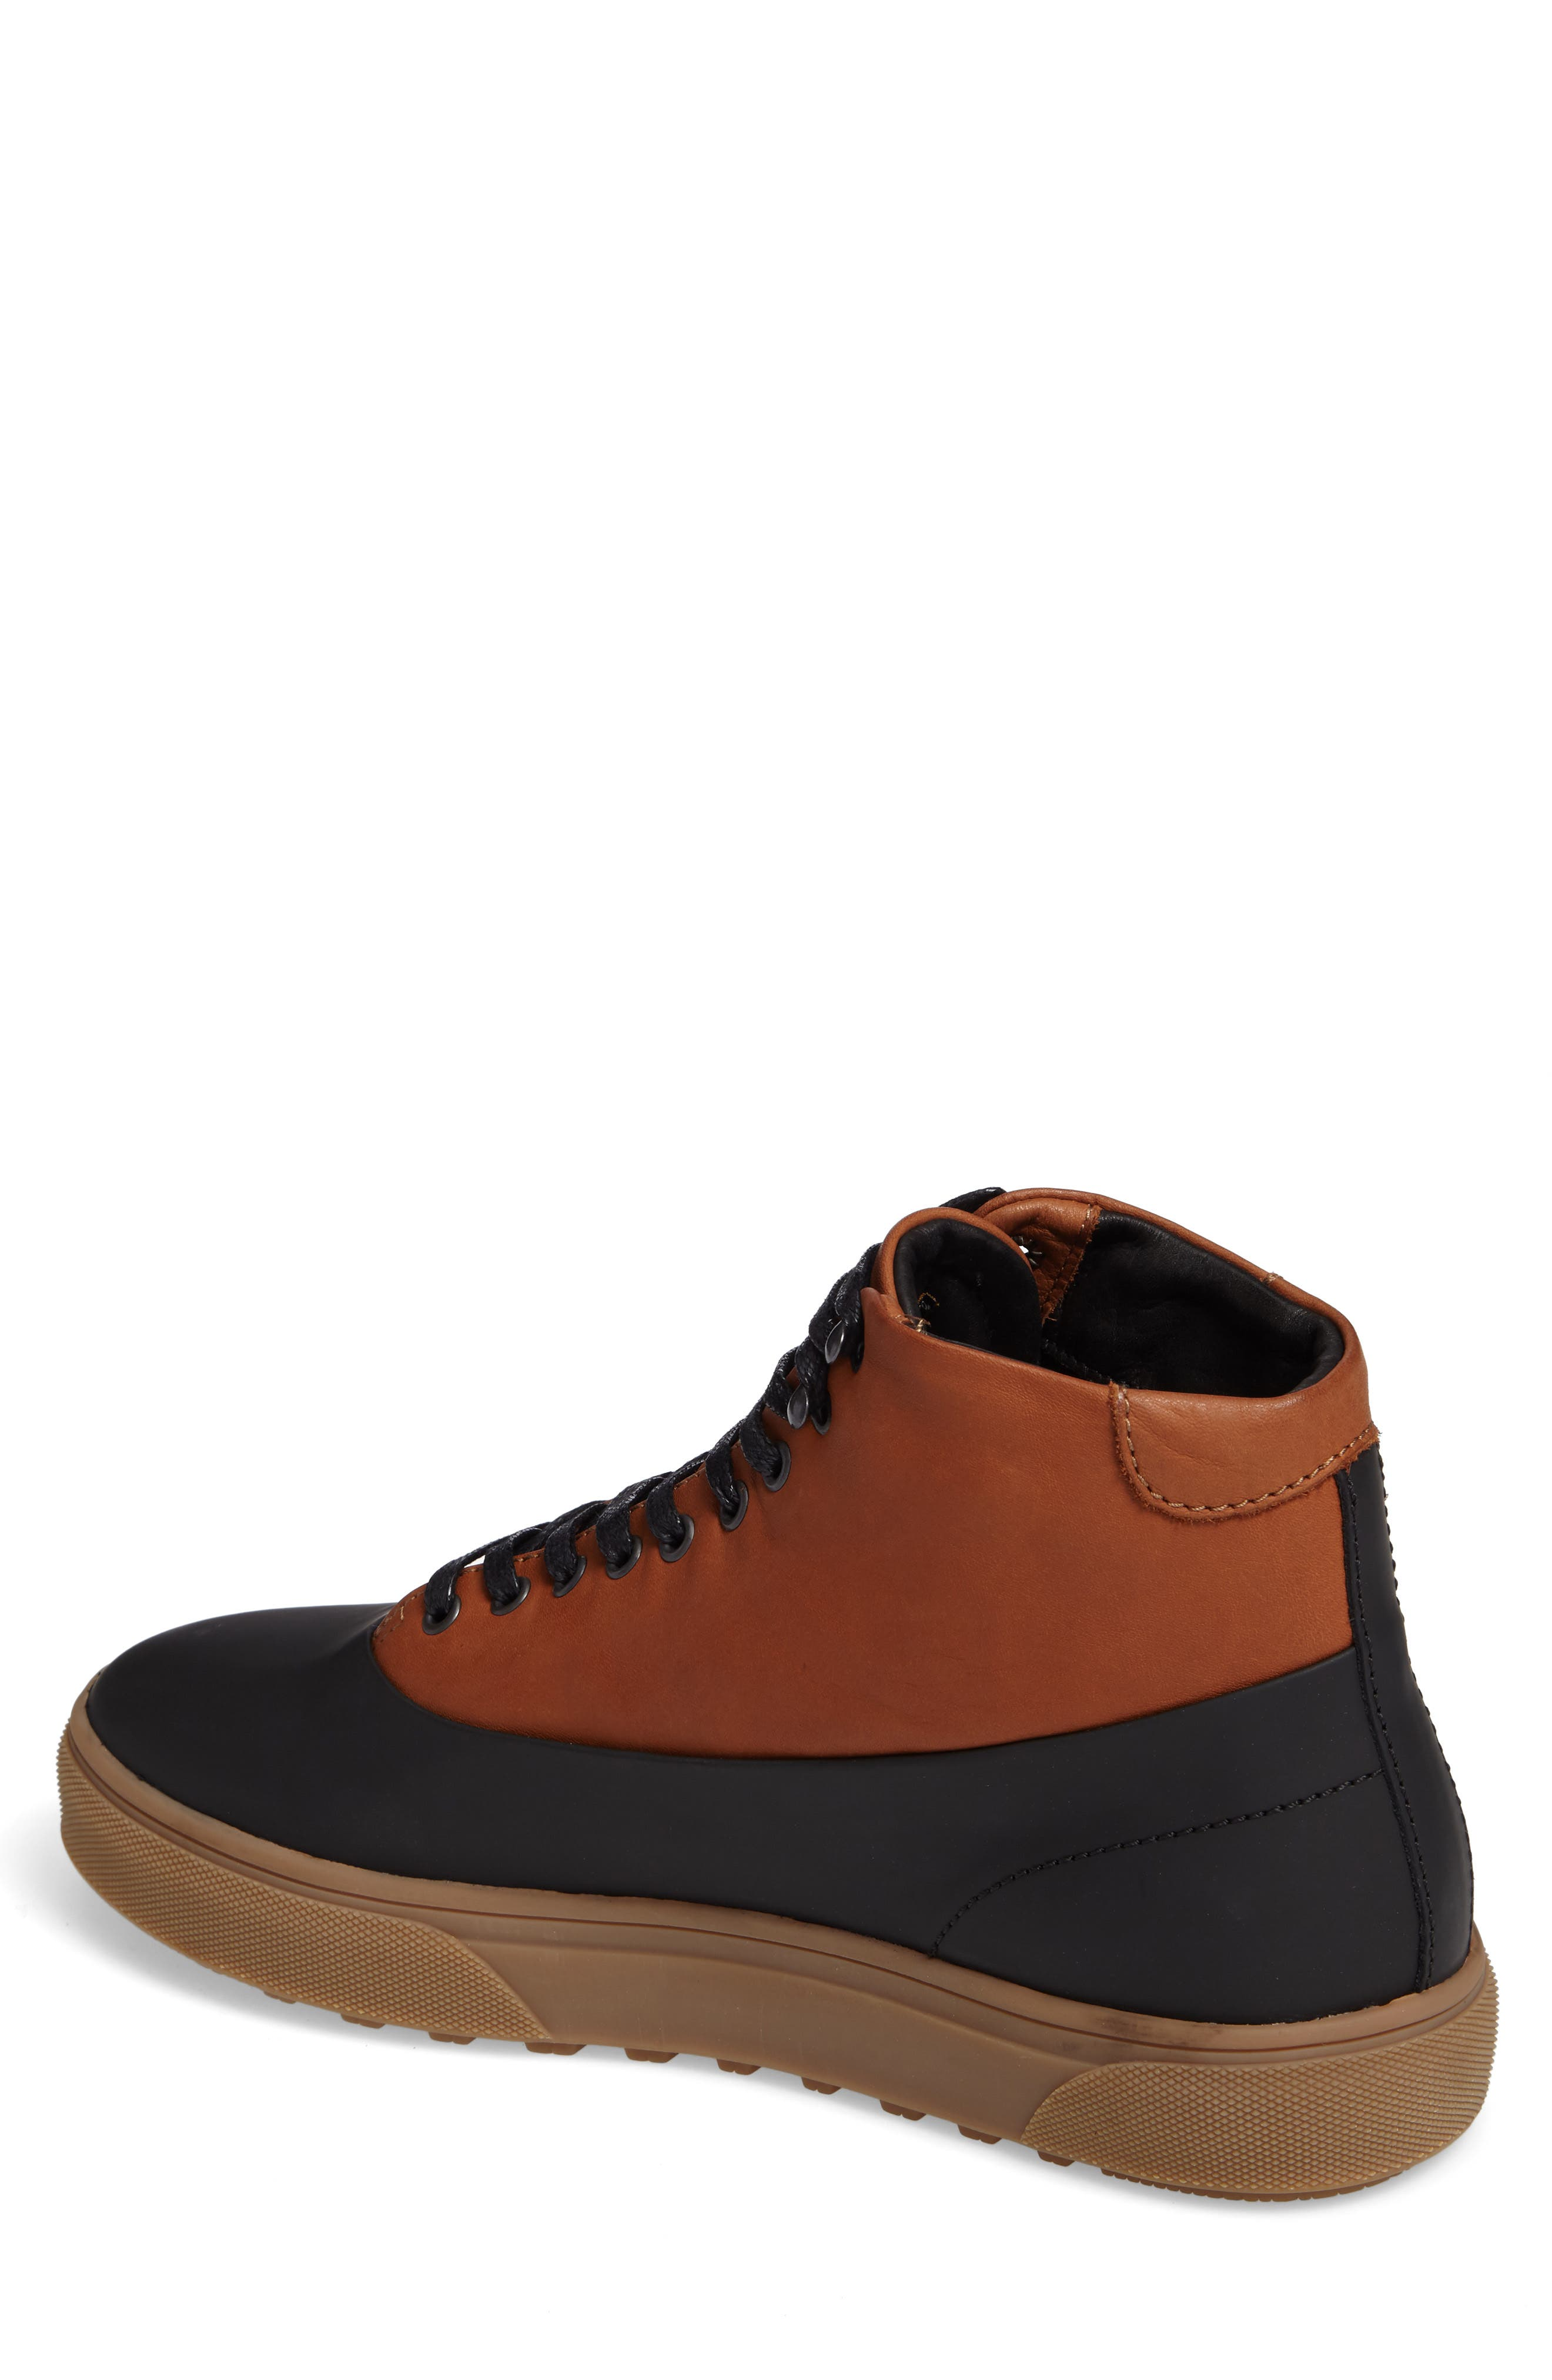 Wayland High Top Sneaker,                             Alternate thumbnail 4, color,